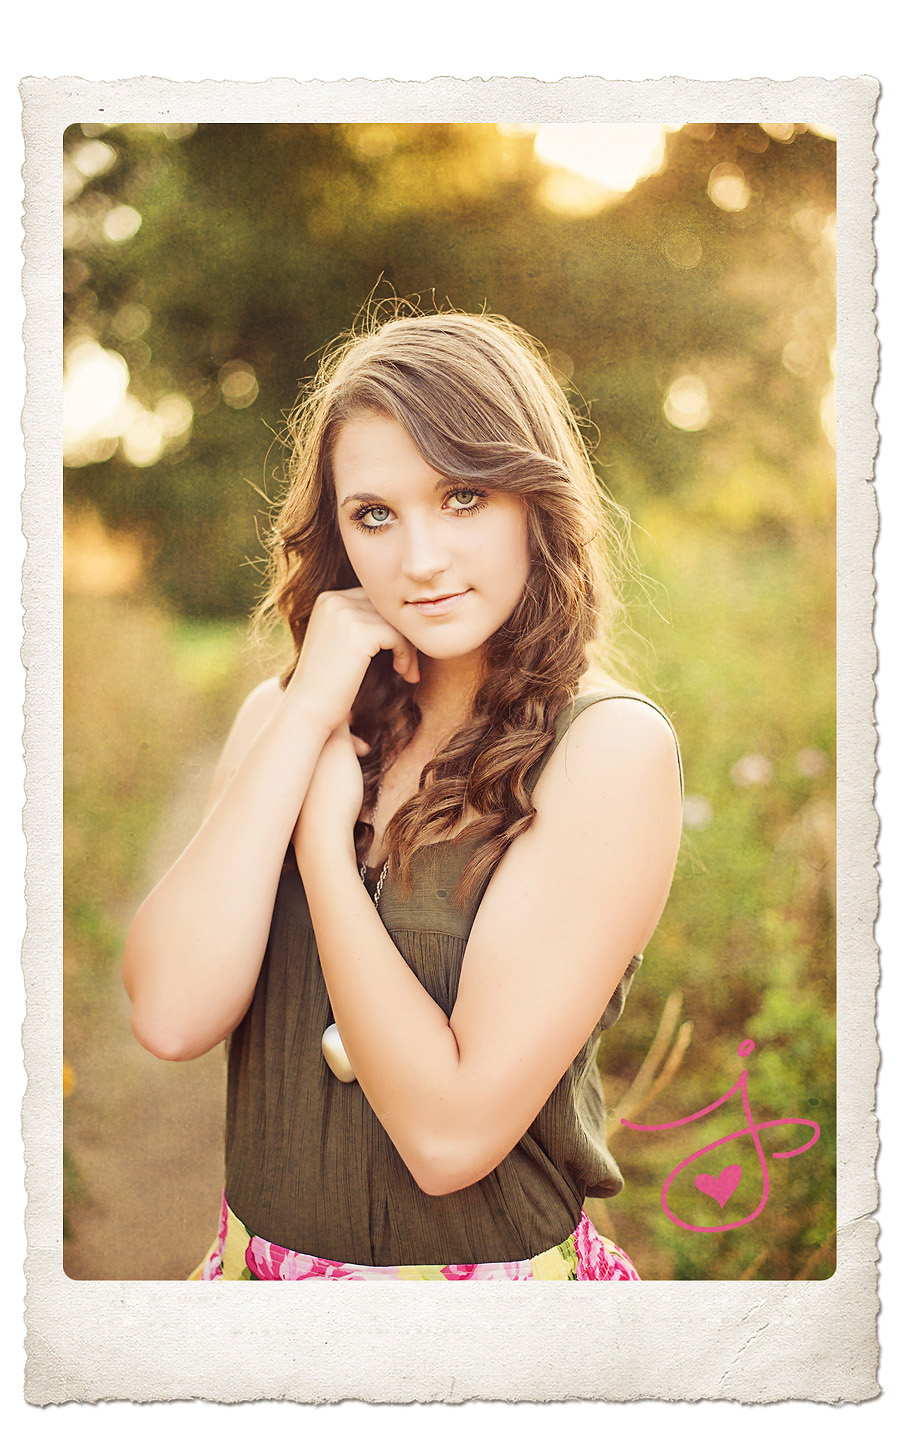 ripon christian girl personals Should christian teenagers date  the spend it texting their girl friend  as i watch the dating life of christian teenagers,.